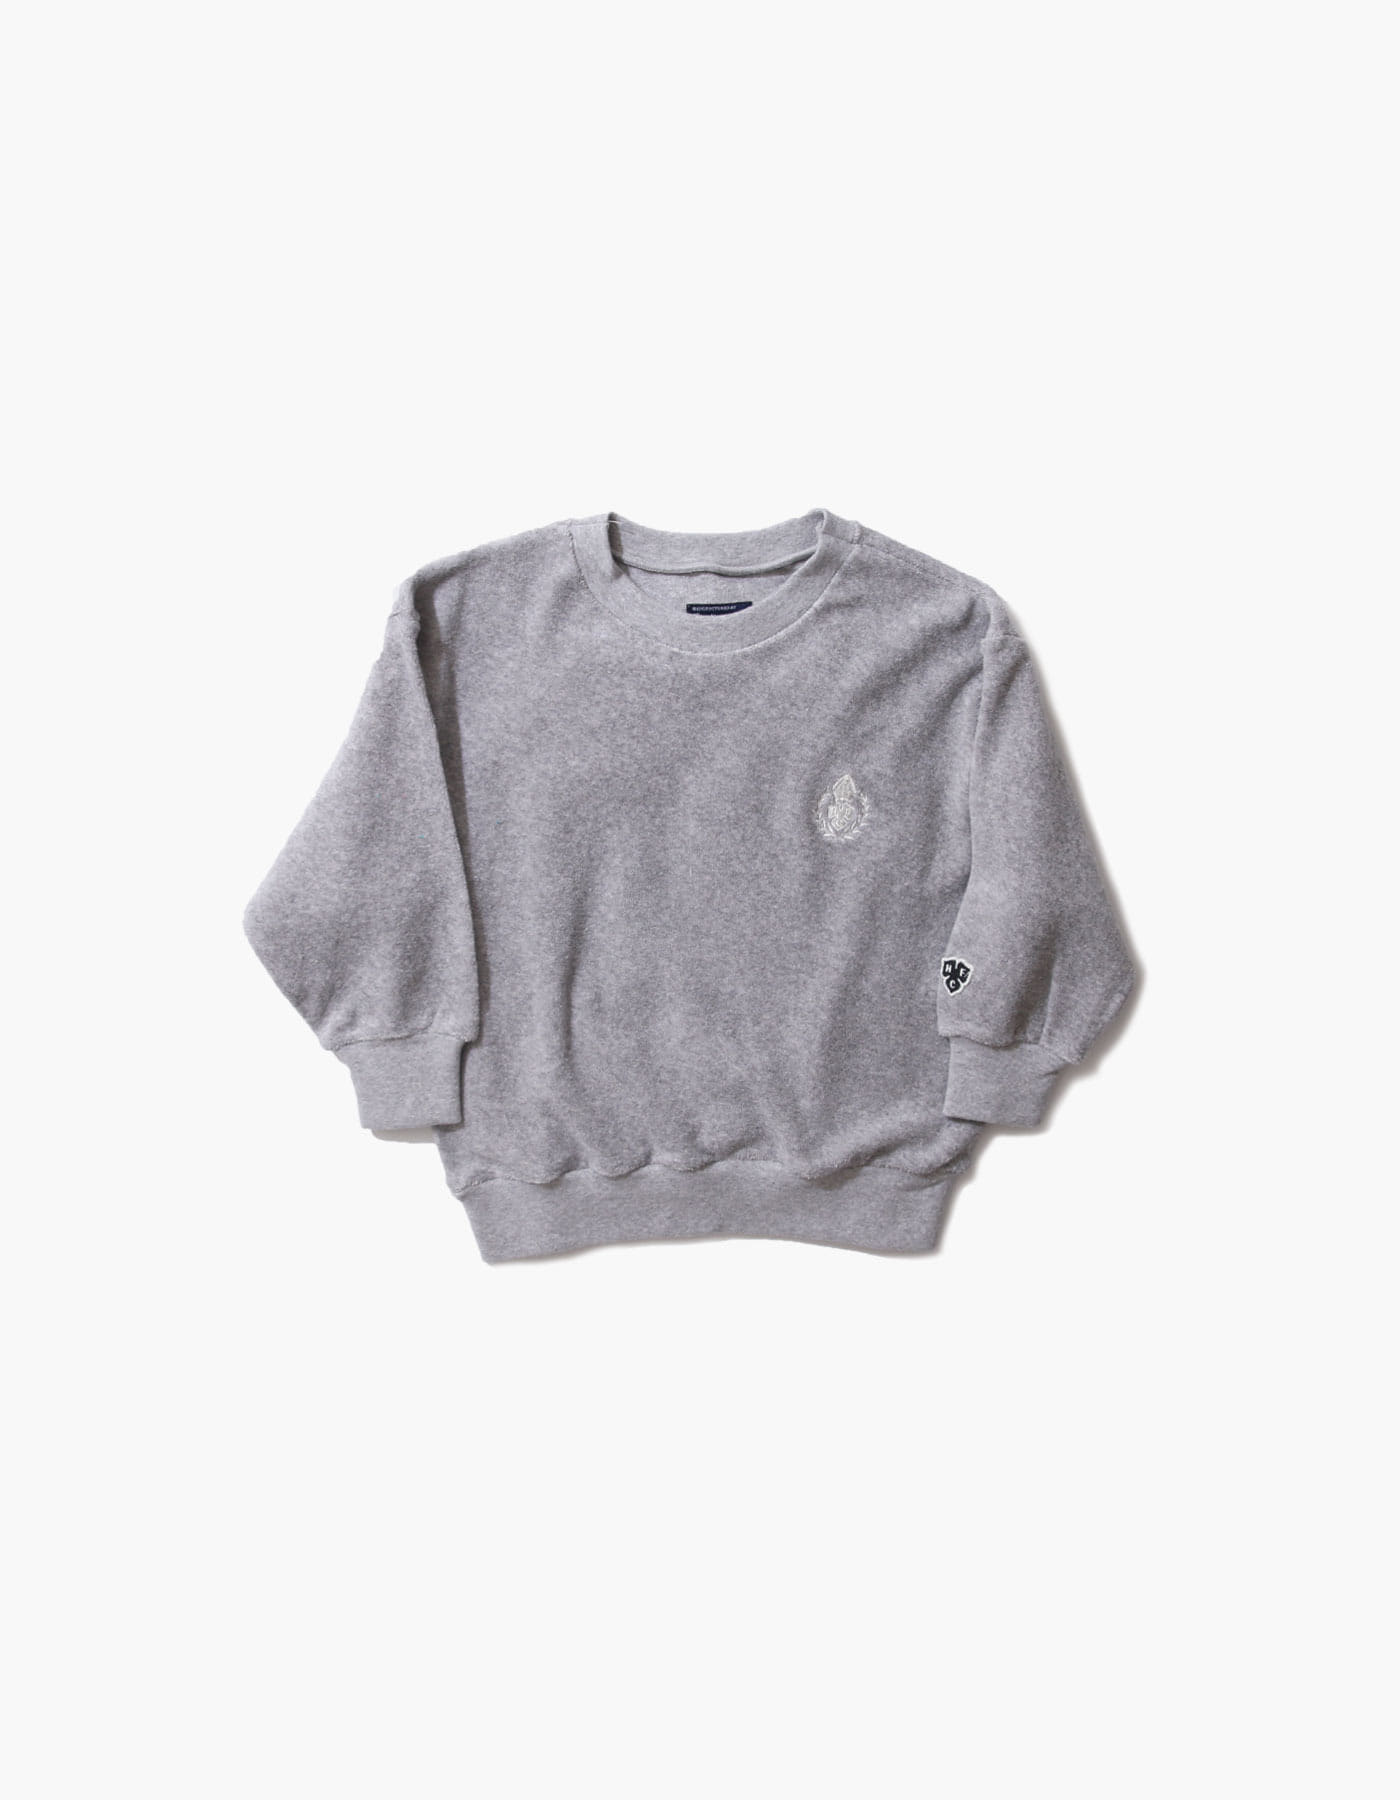 HFC CREST KIDS TOWEL CREWNECK / M.GREY(5%)